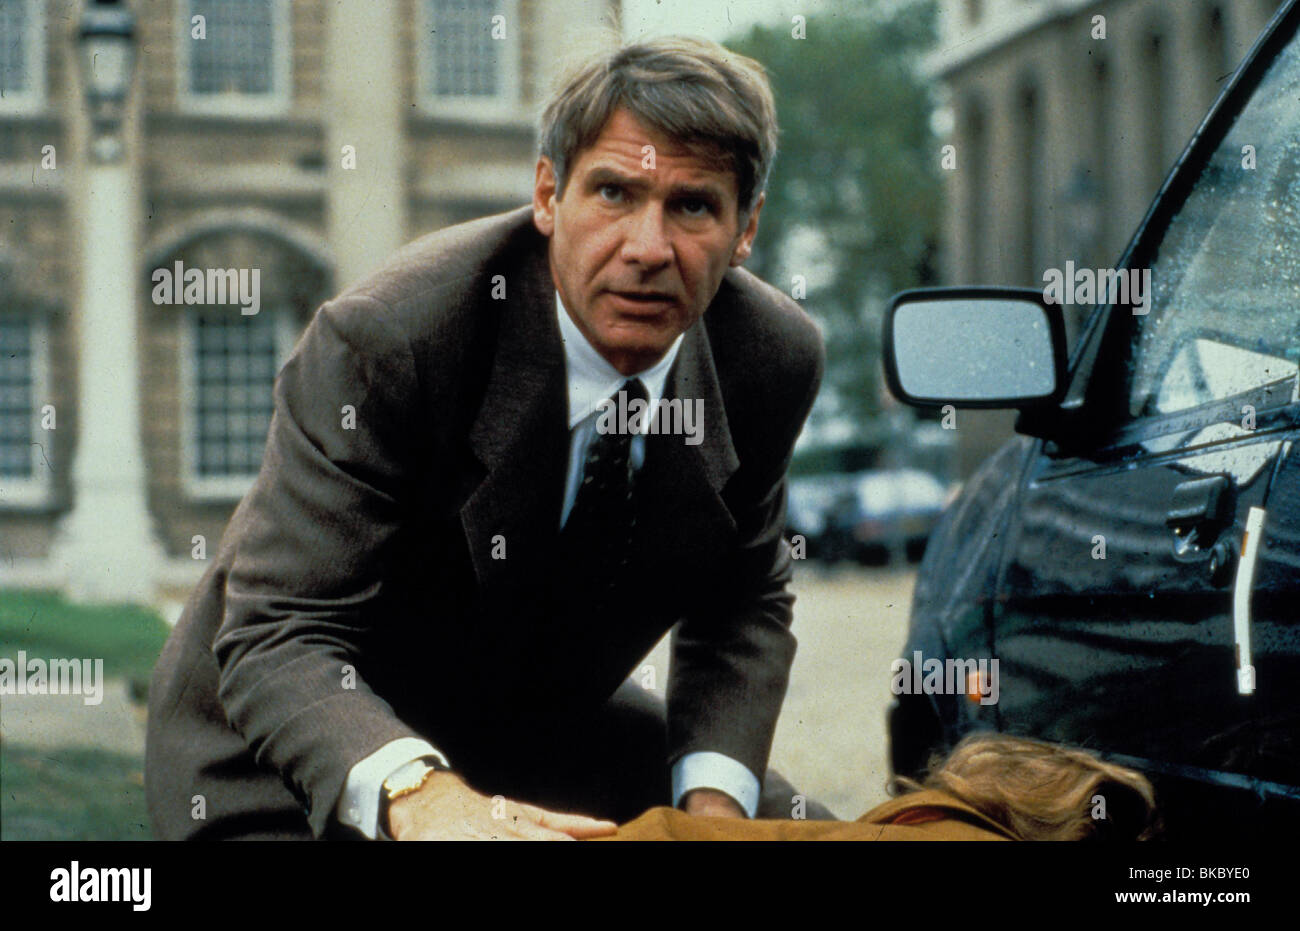 PATRIOT GAMES (1992) HARRISON FORD PTG 100 - Stock Image